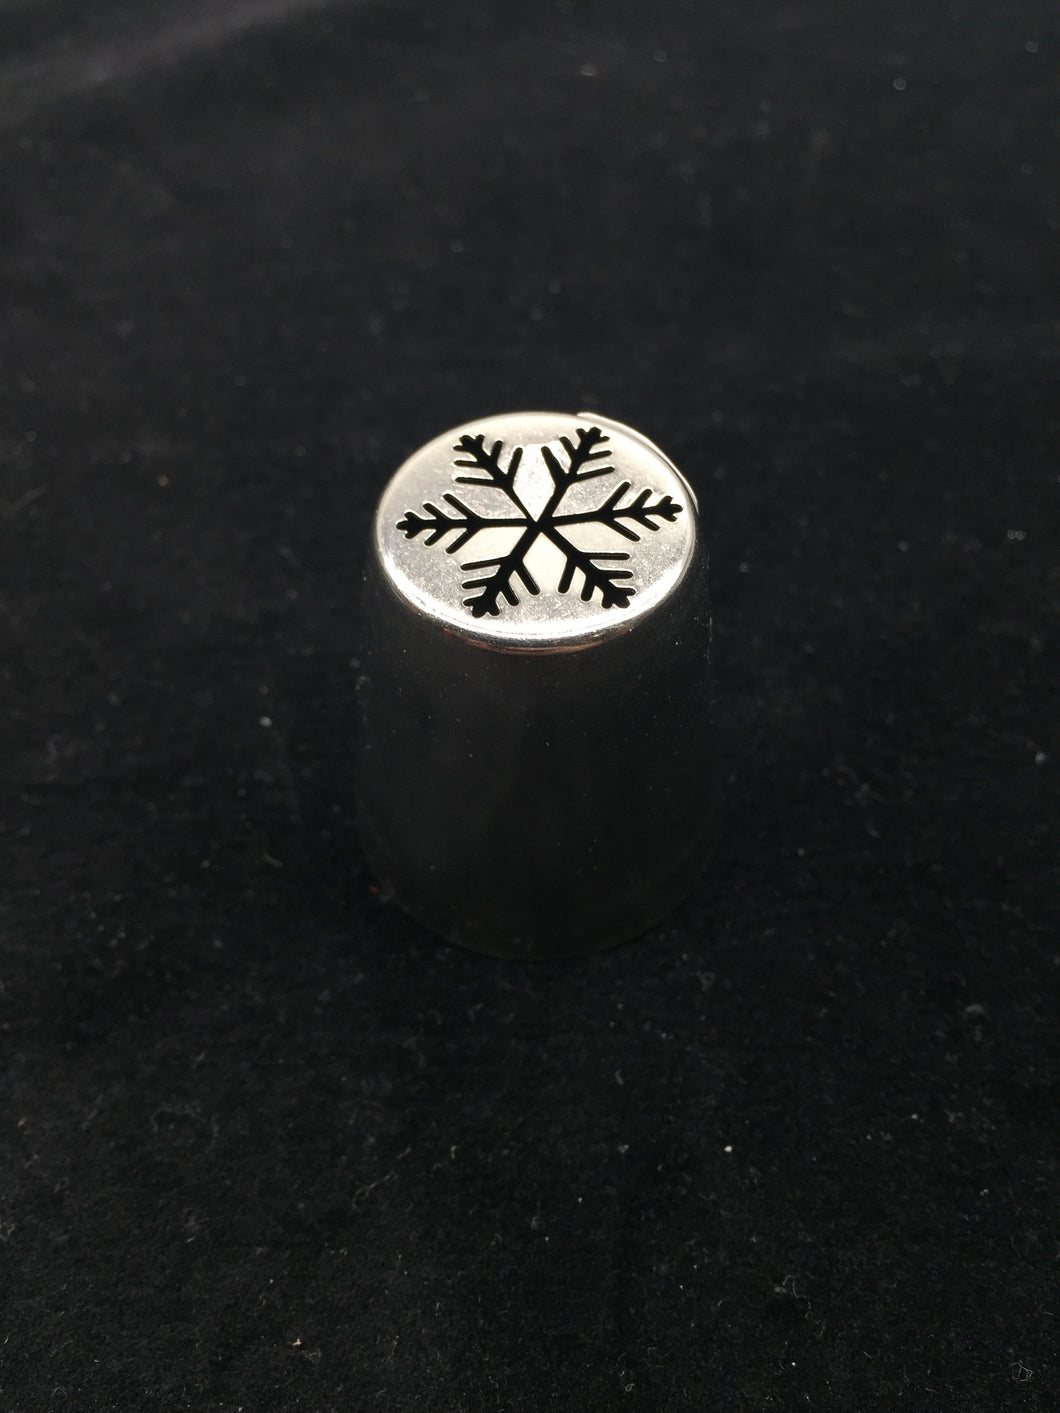 Russian Piping Tip Snowflake